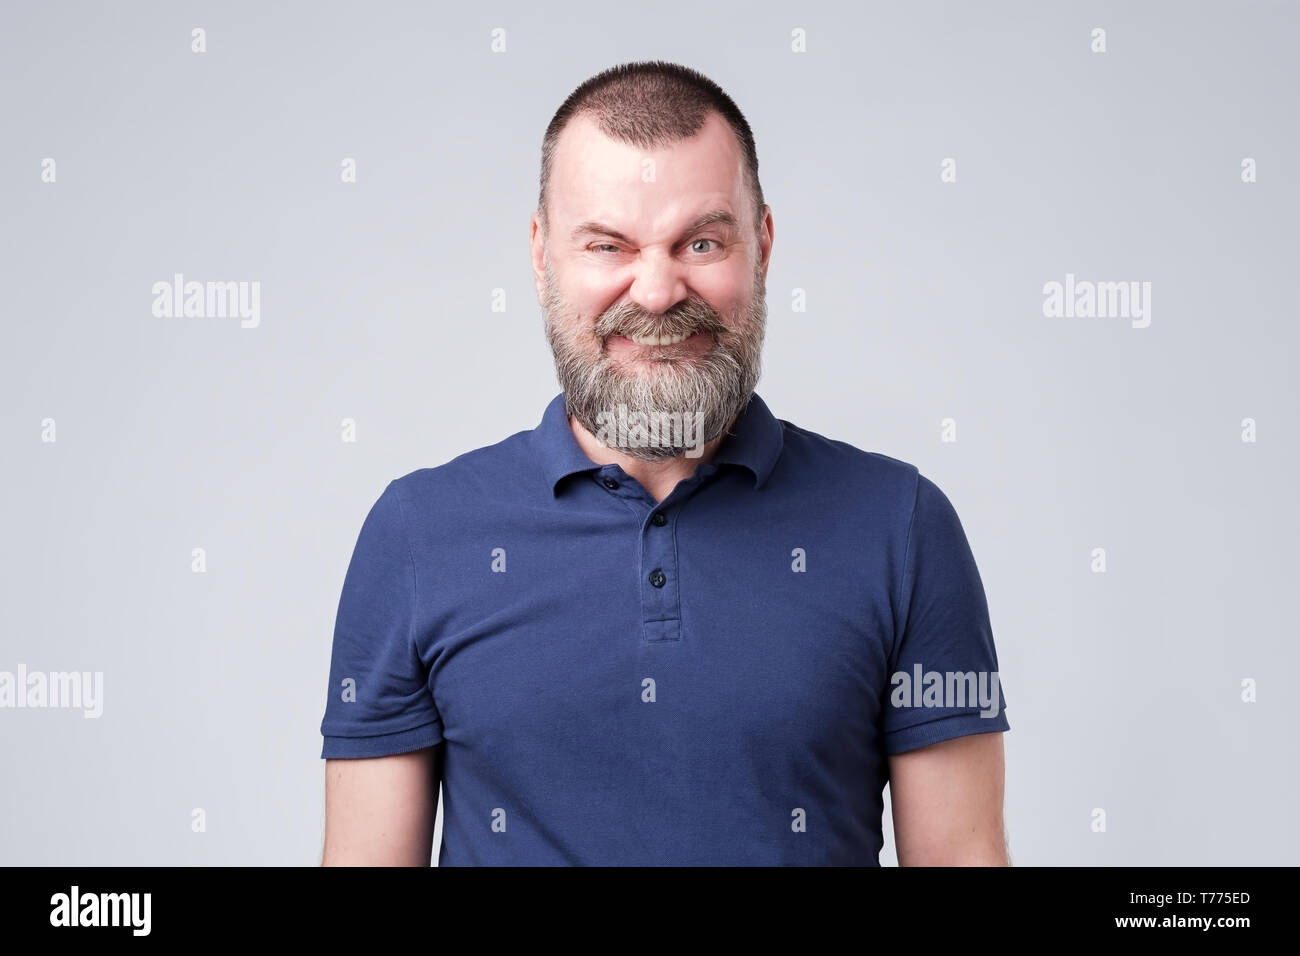 Mature male making a funny smiling grimace. Studio shot - Stock Image